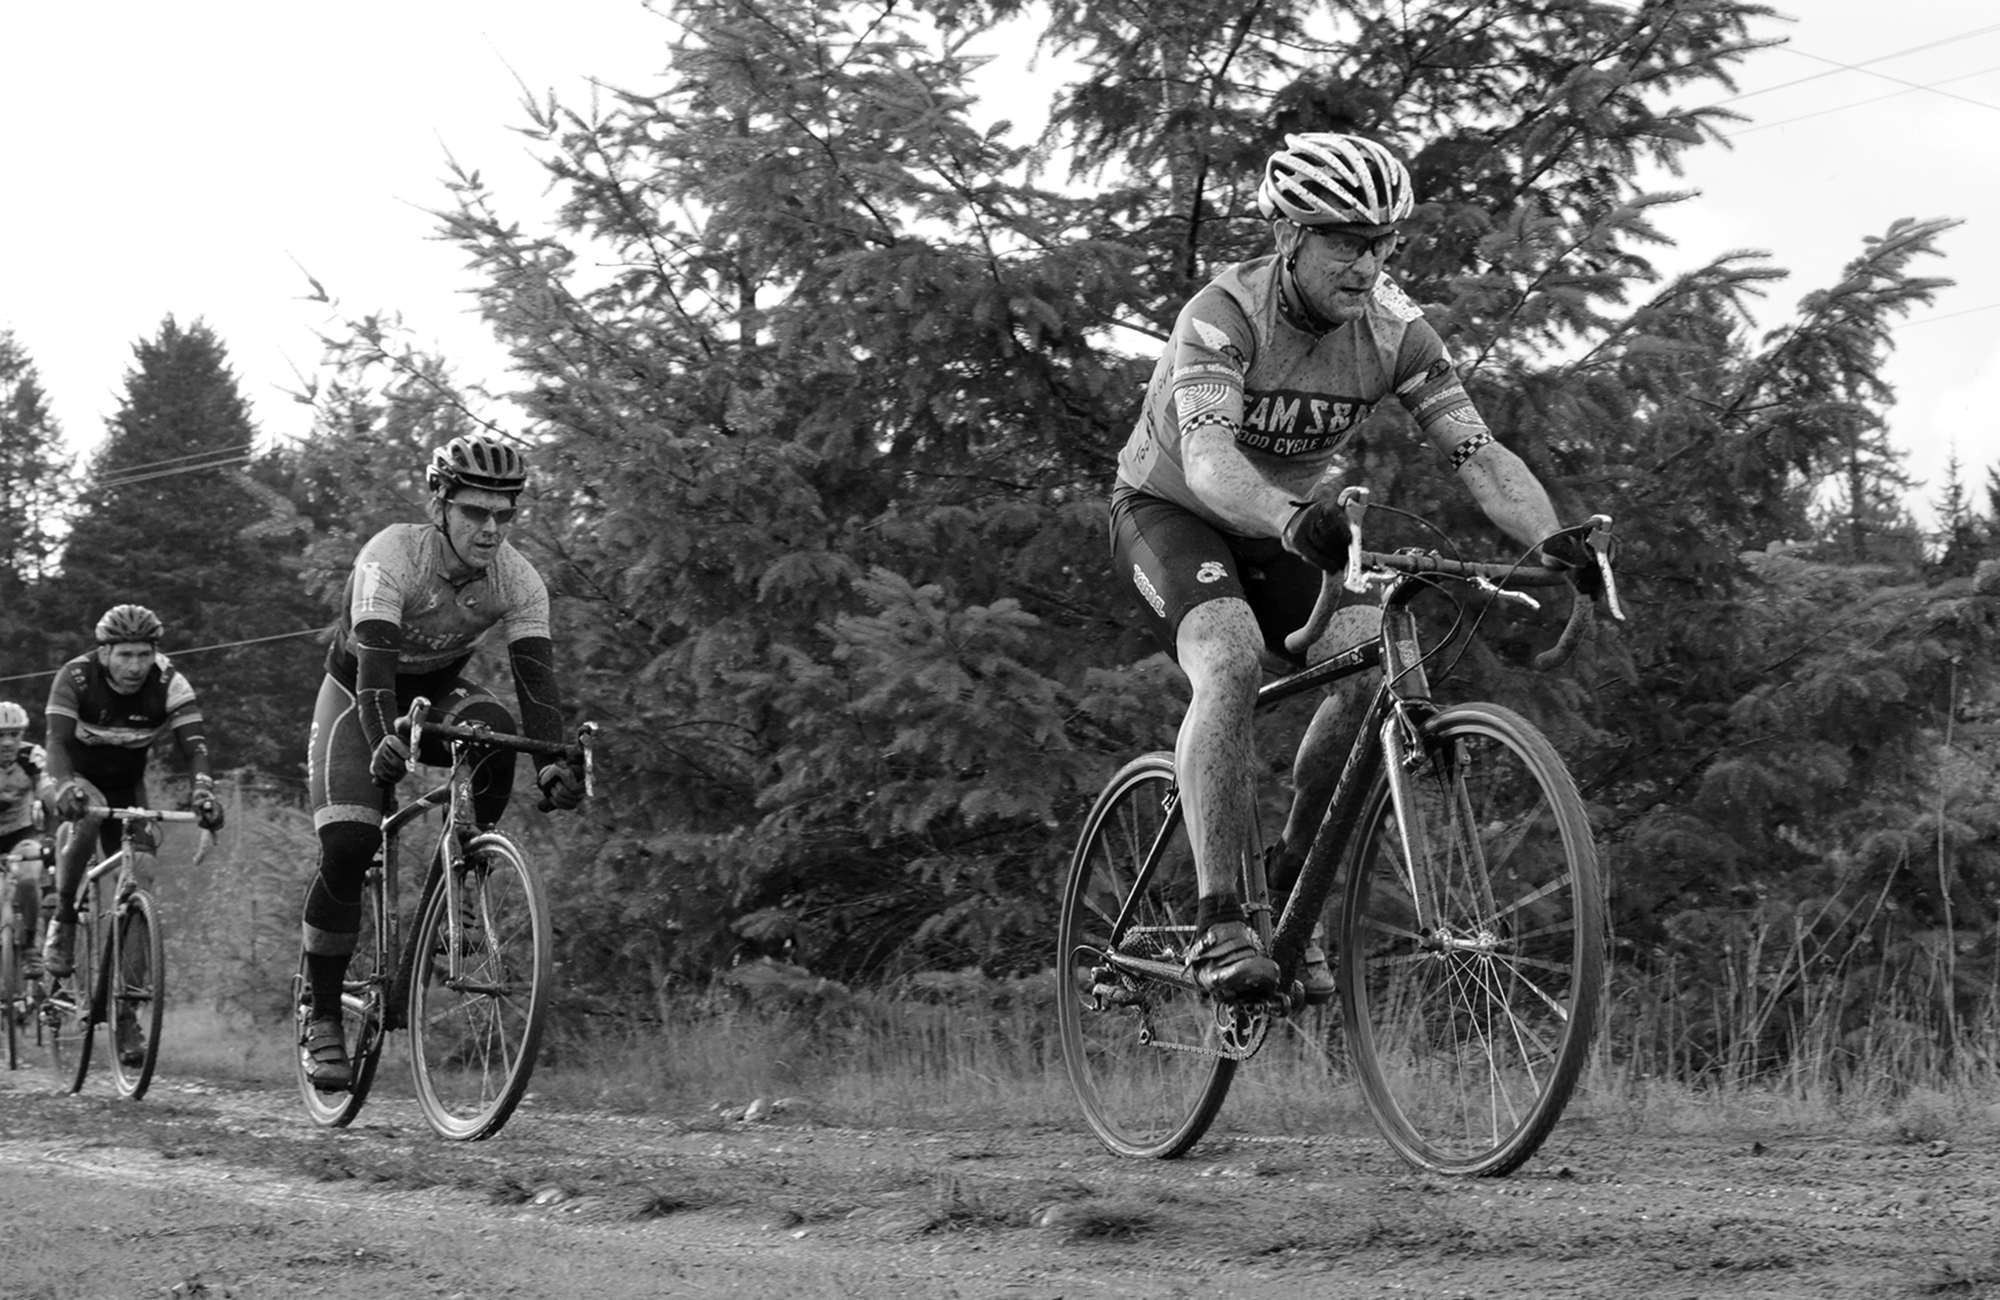 SellwoodCycle_CCBP_25